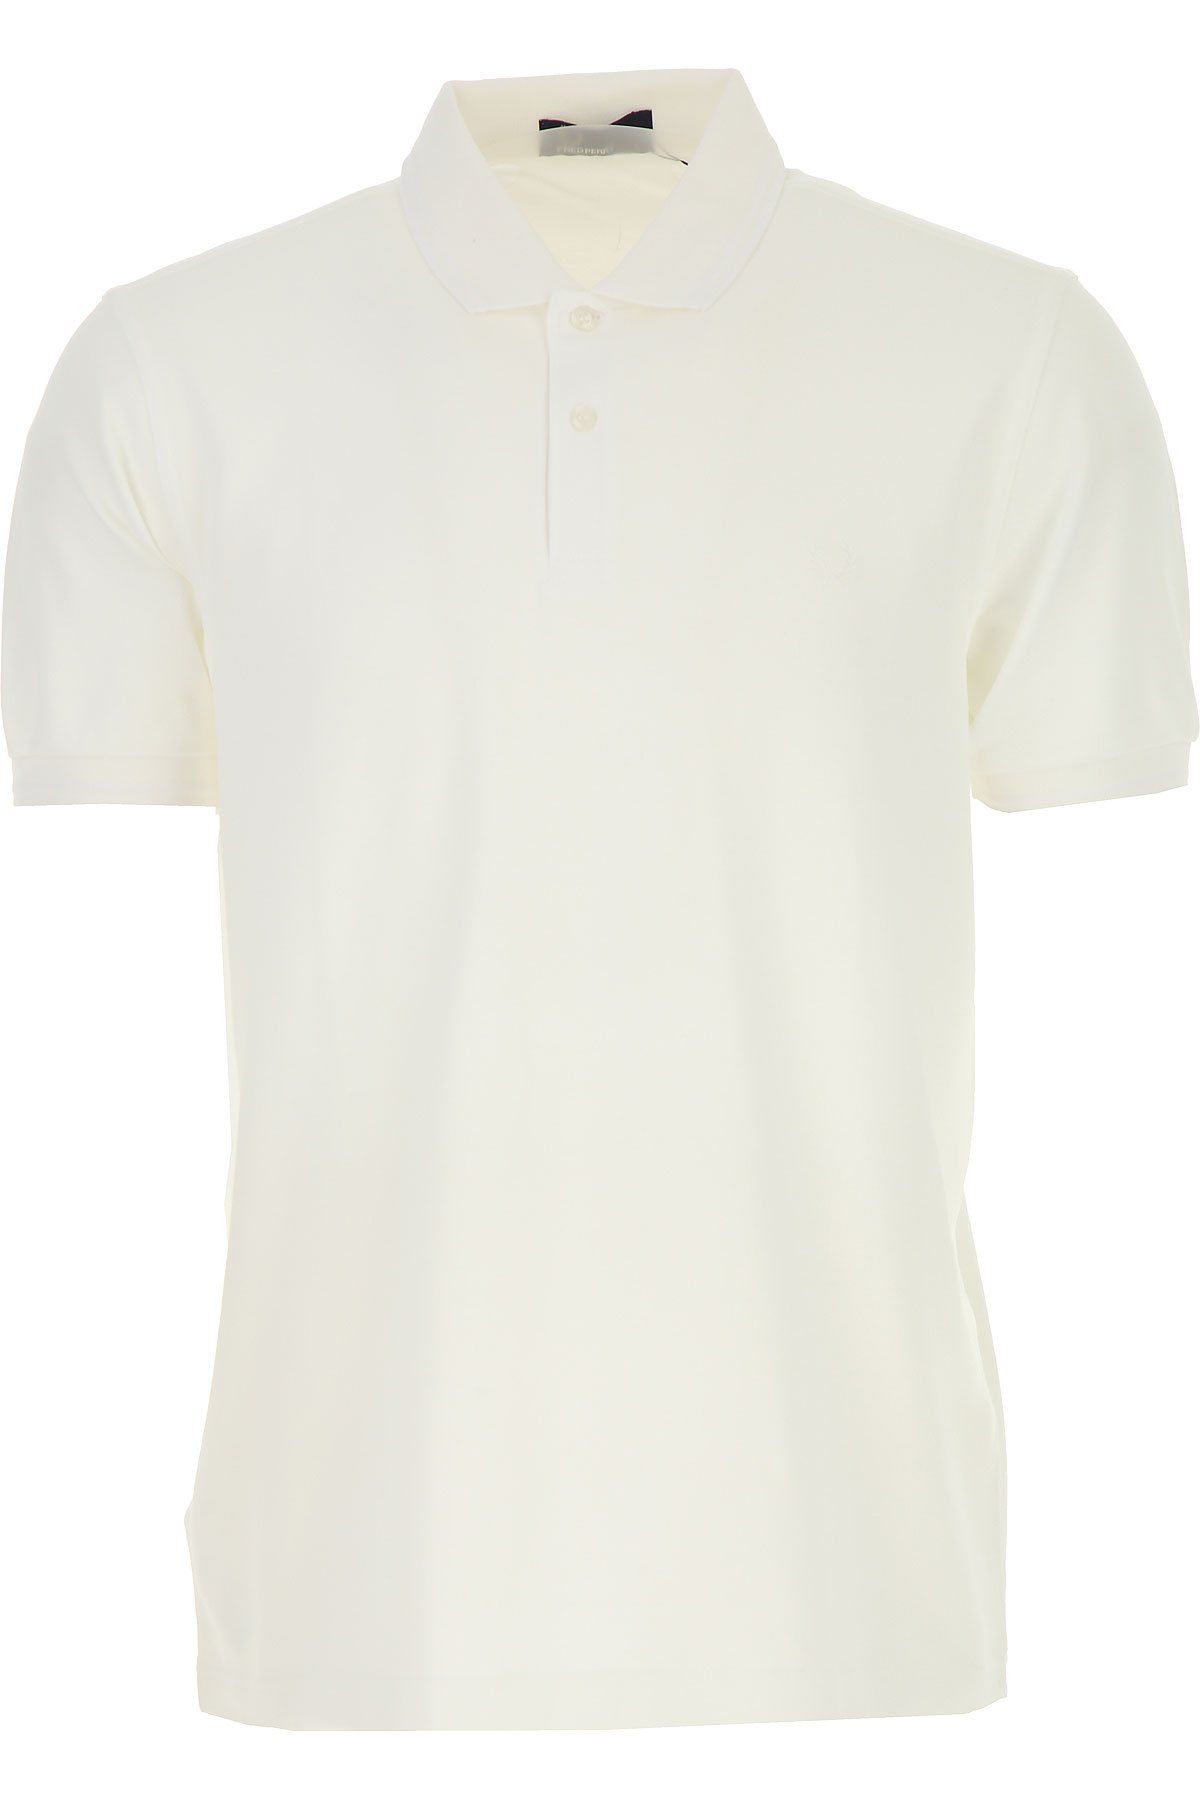 Image of Fred Perry Polo Shirt for Men, White, Cotton, 2017, L M S XL